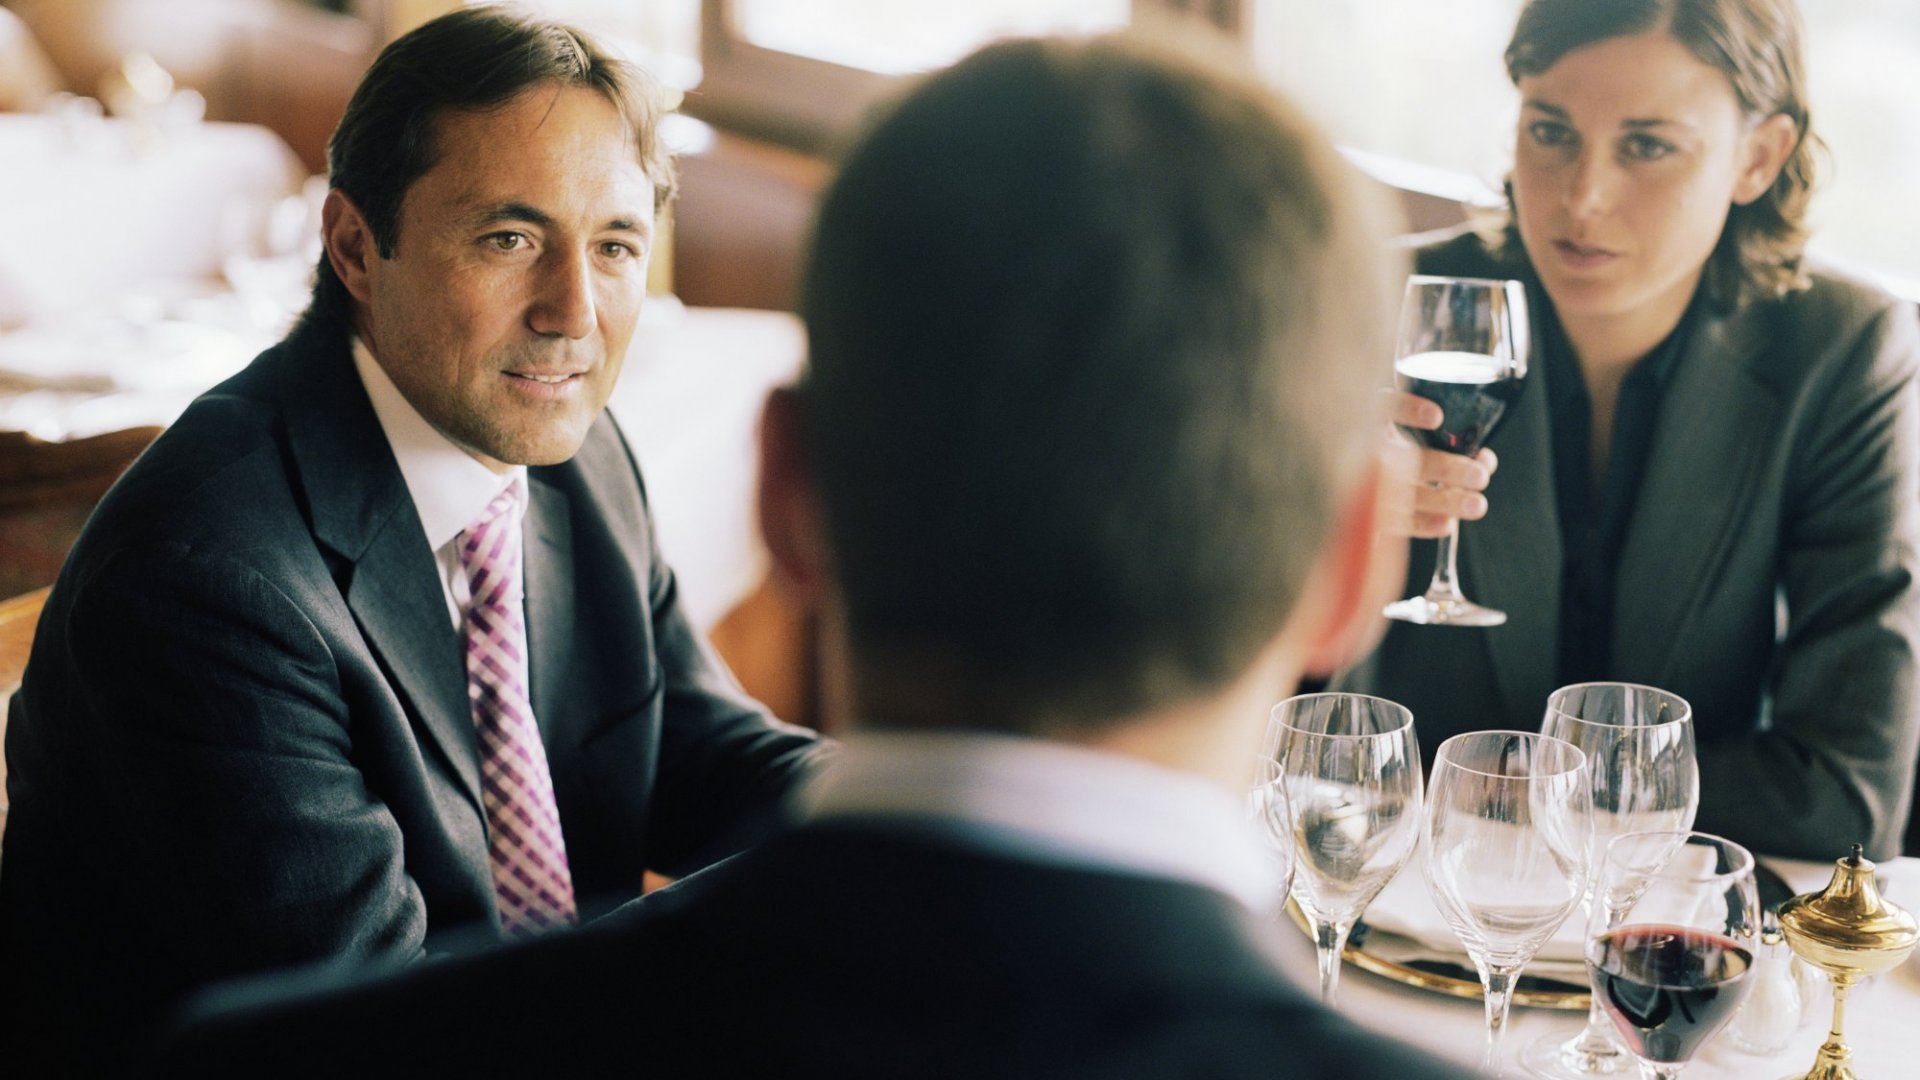 How To Guarantee An Insanely Successful Business Lunch